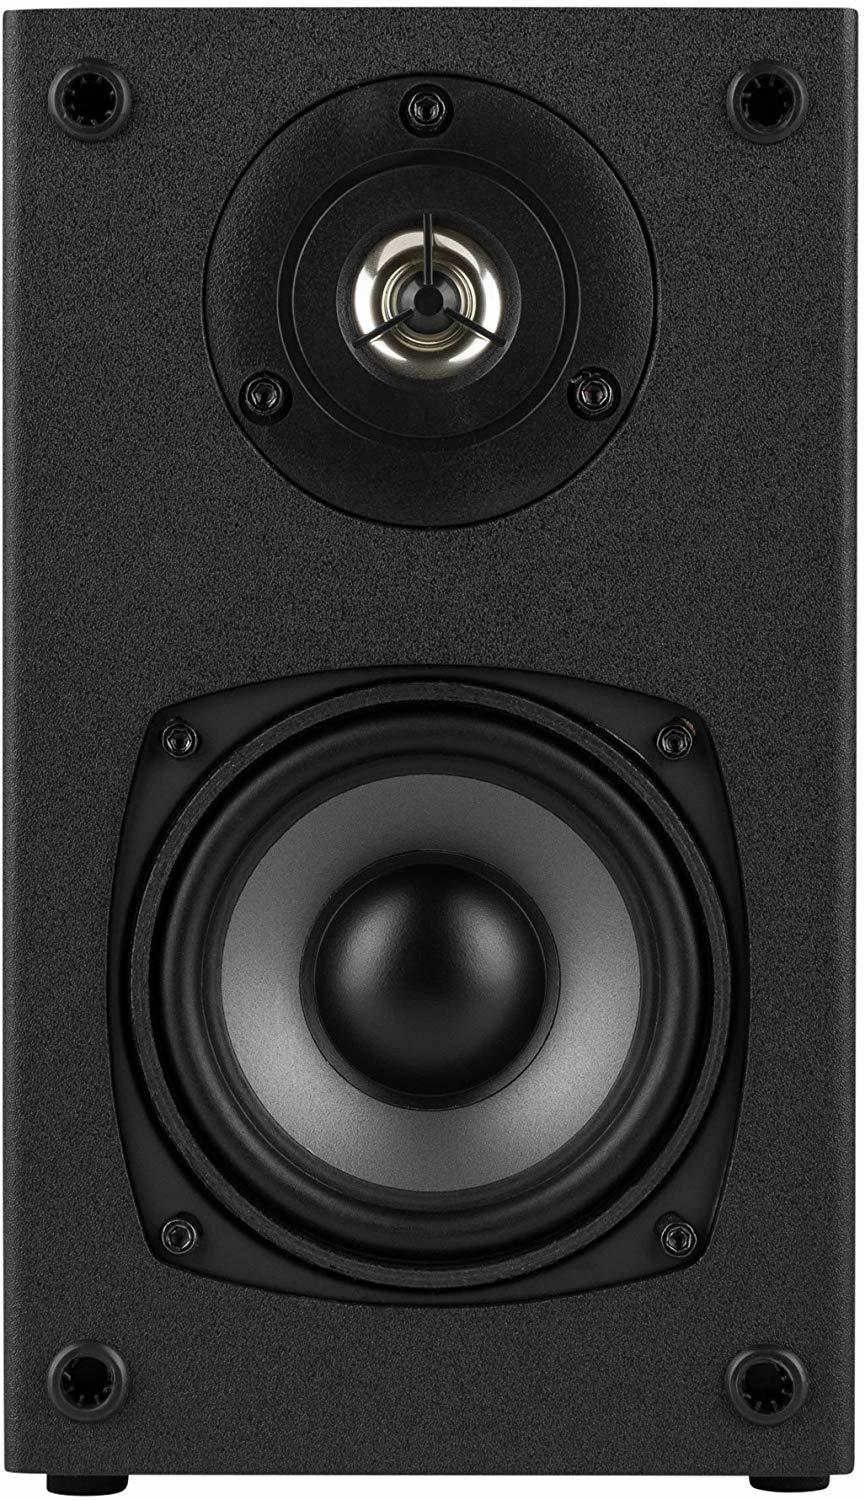 Best Bookshelf Speakers 2020.2020 Best Entry Level Bookshelf Speakers In Malaysia